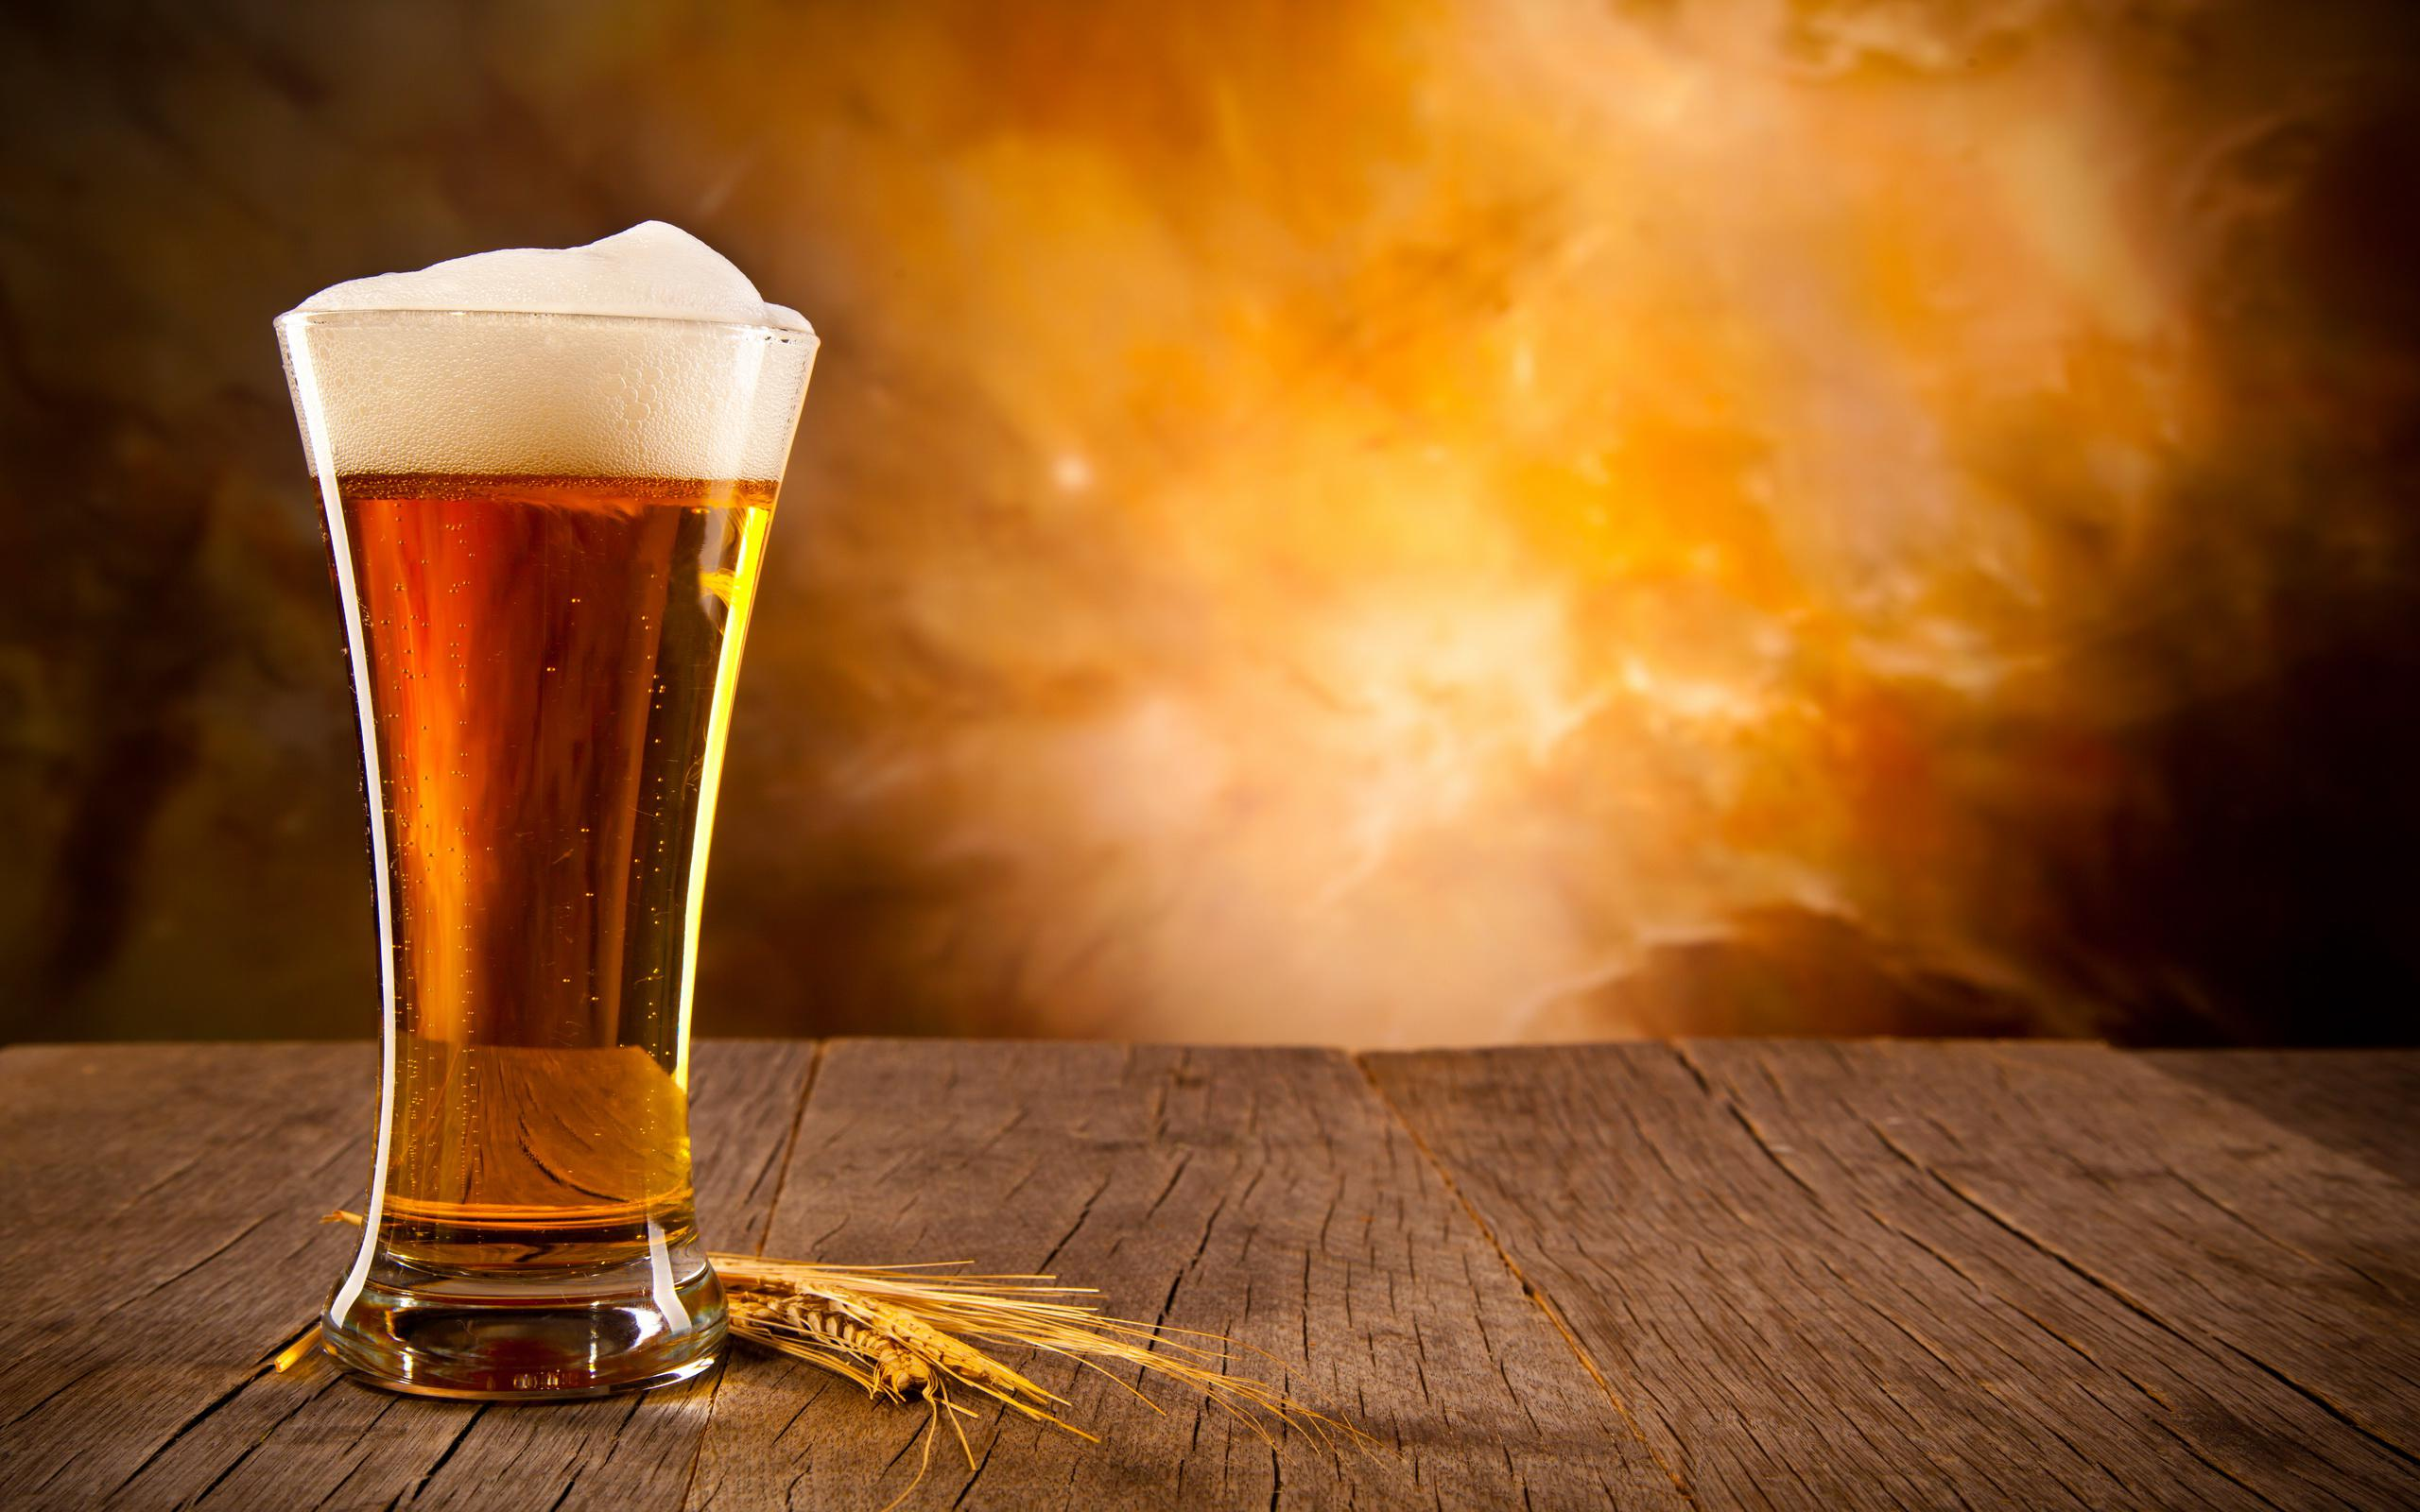 Beer is known as cardiac arrest and cognitive decline preventer